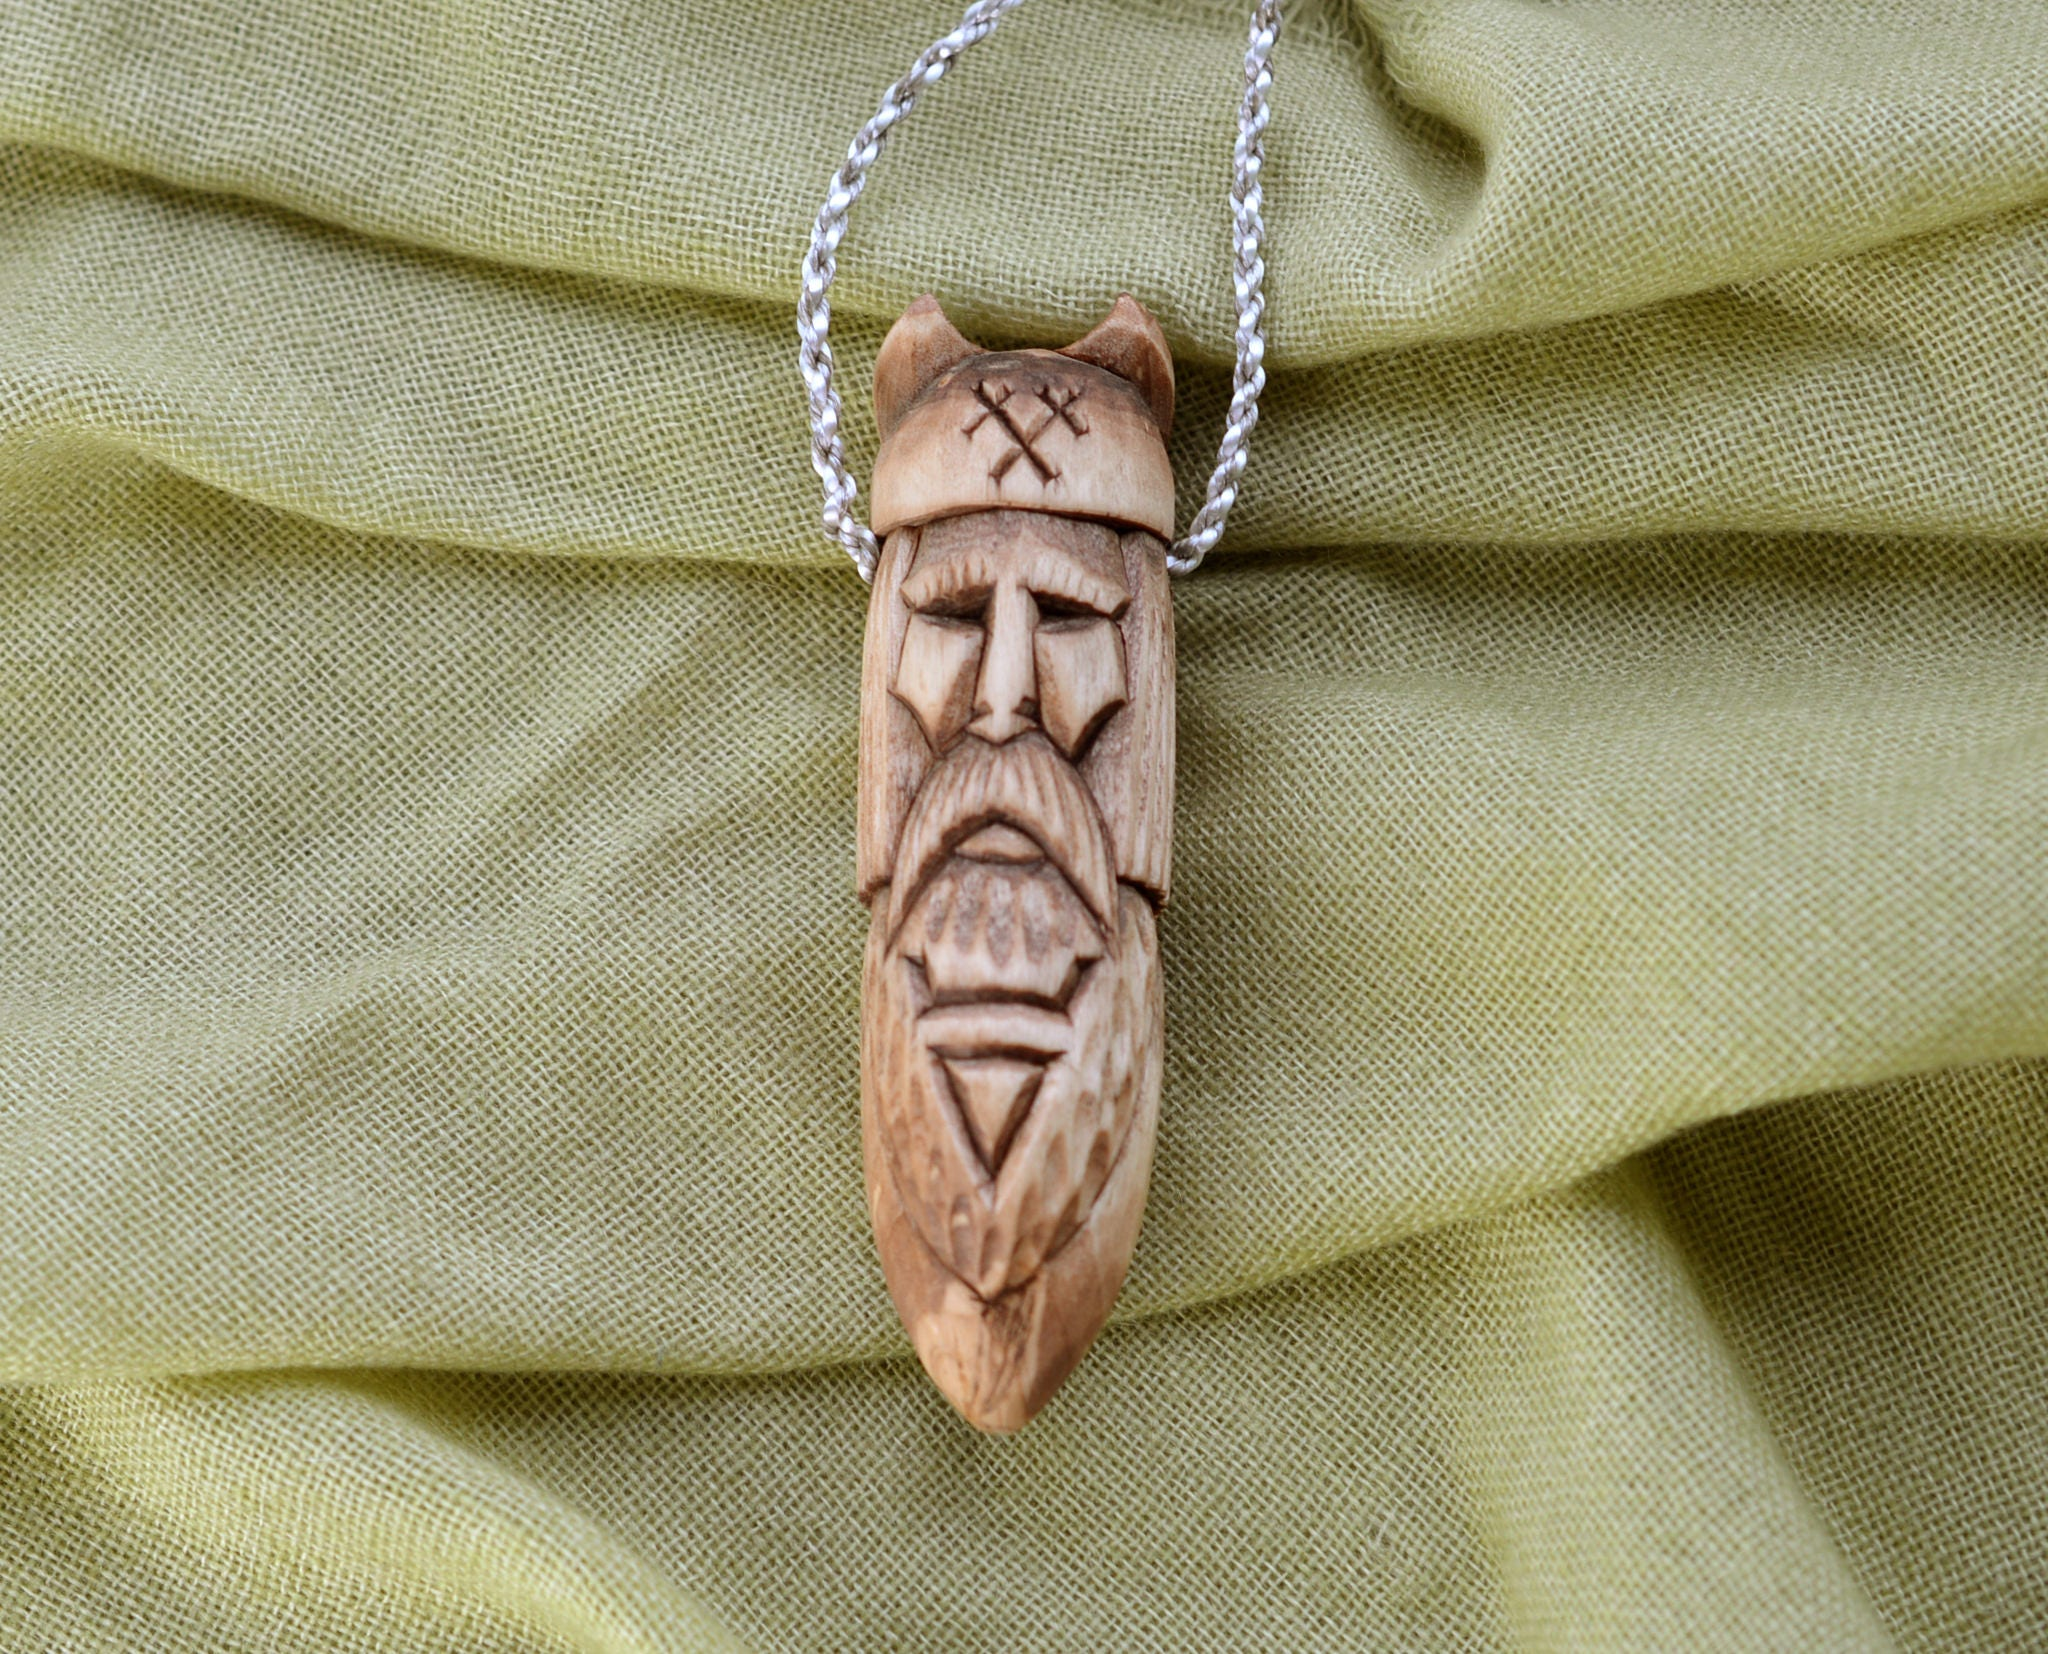 ie wood zoom il handcarved knot necklace pendant irish fullxfull celtic shamrock carving listing oak